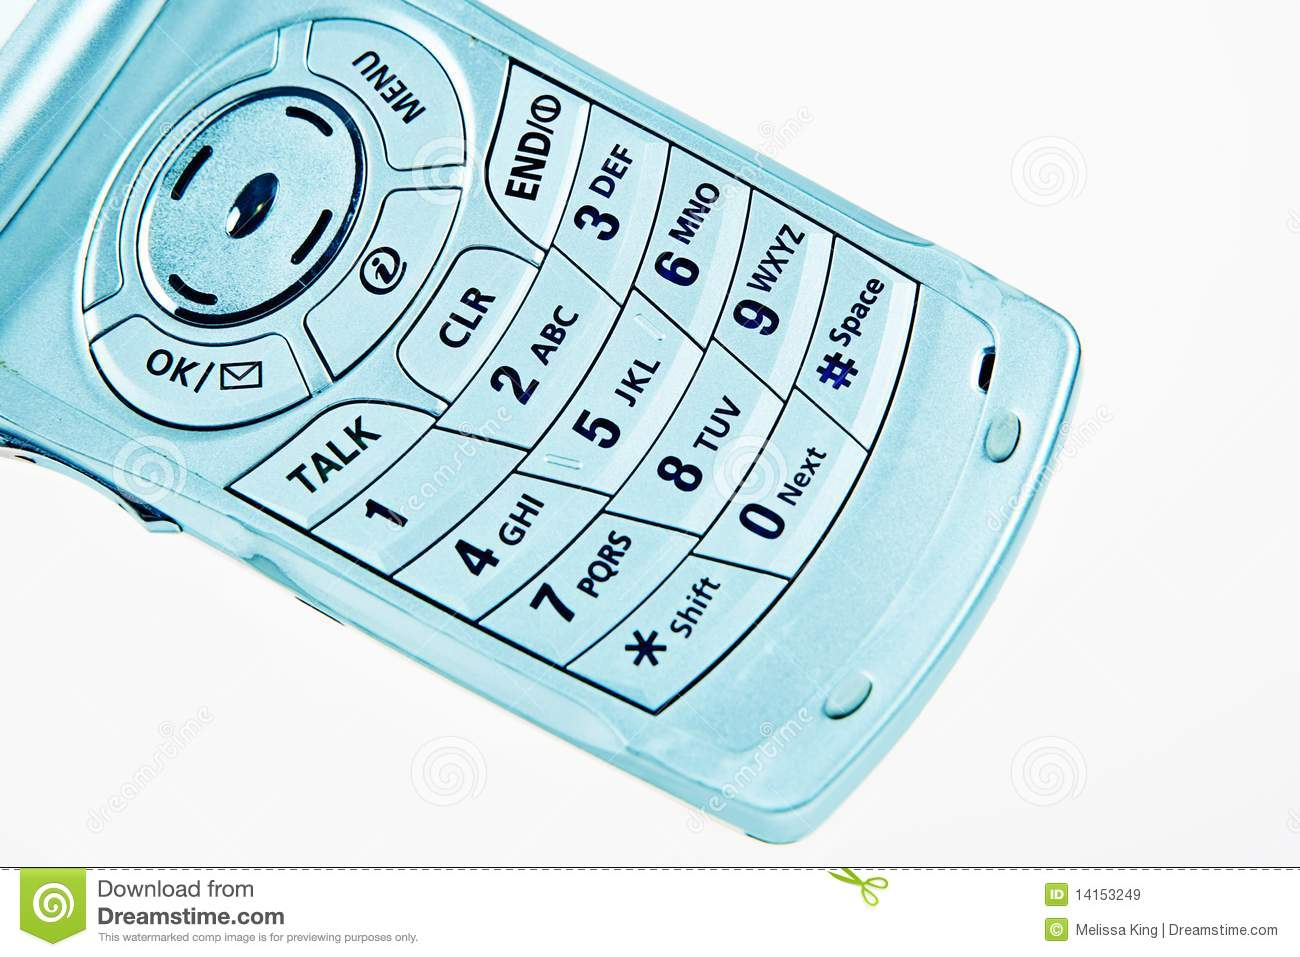 how to give cell phone a phone number